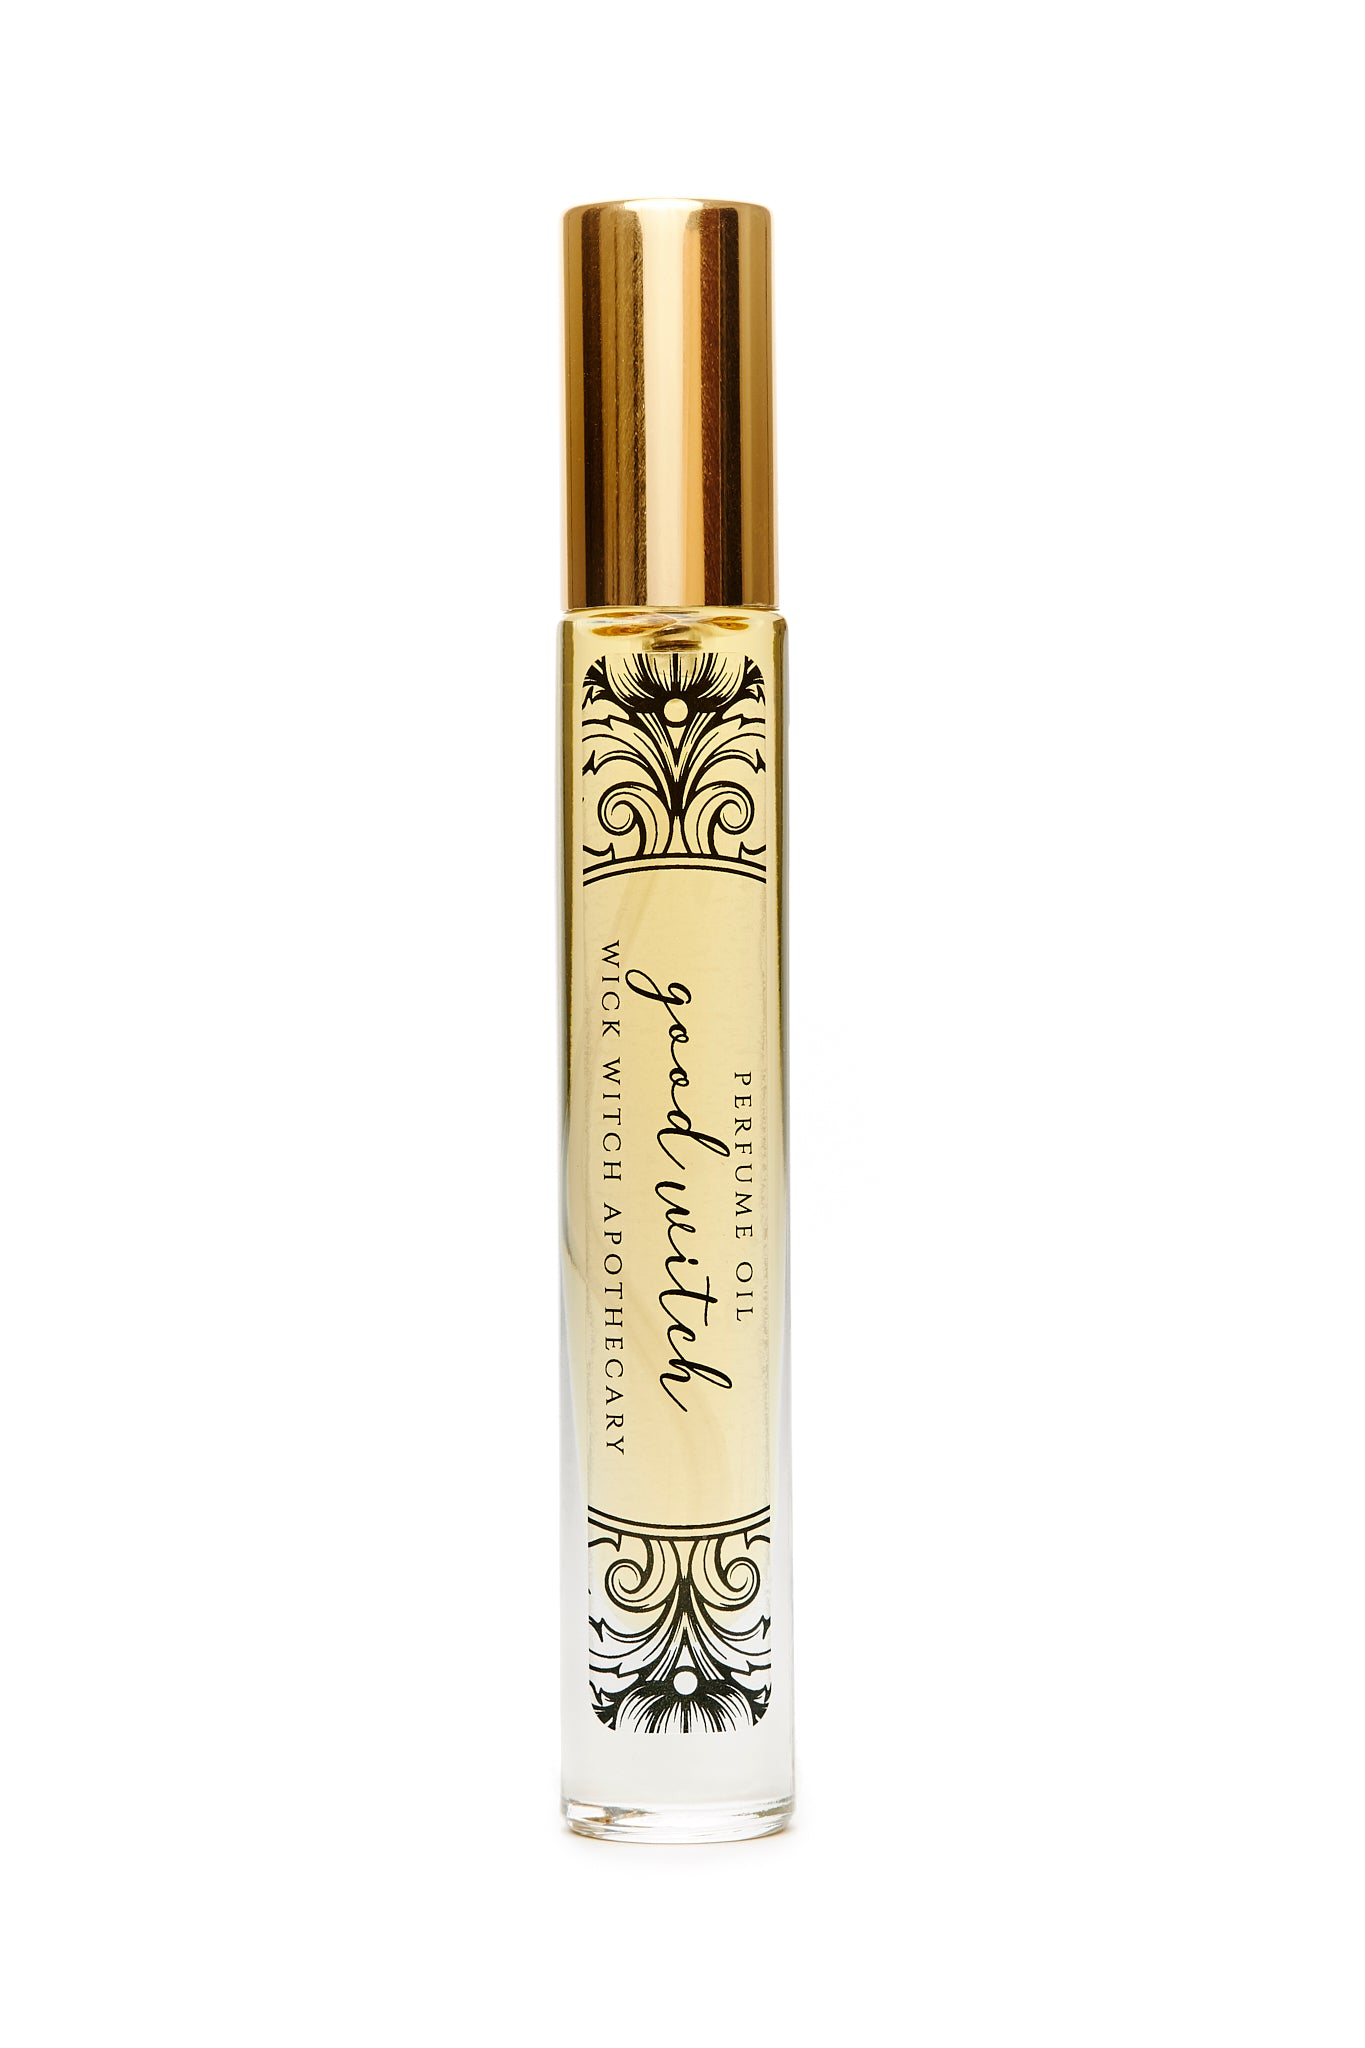 GOOD WITCH PERFUME OIL